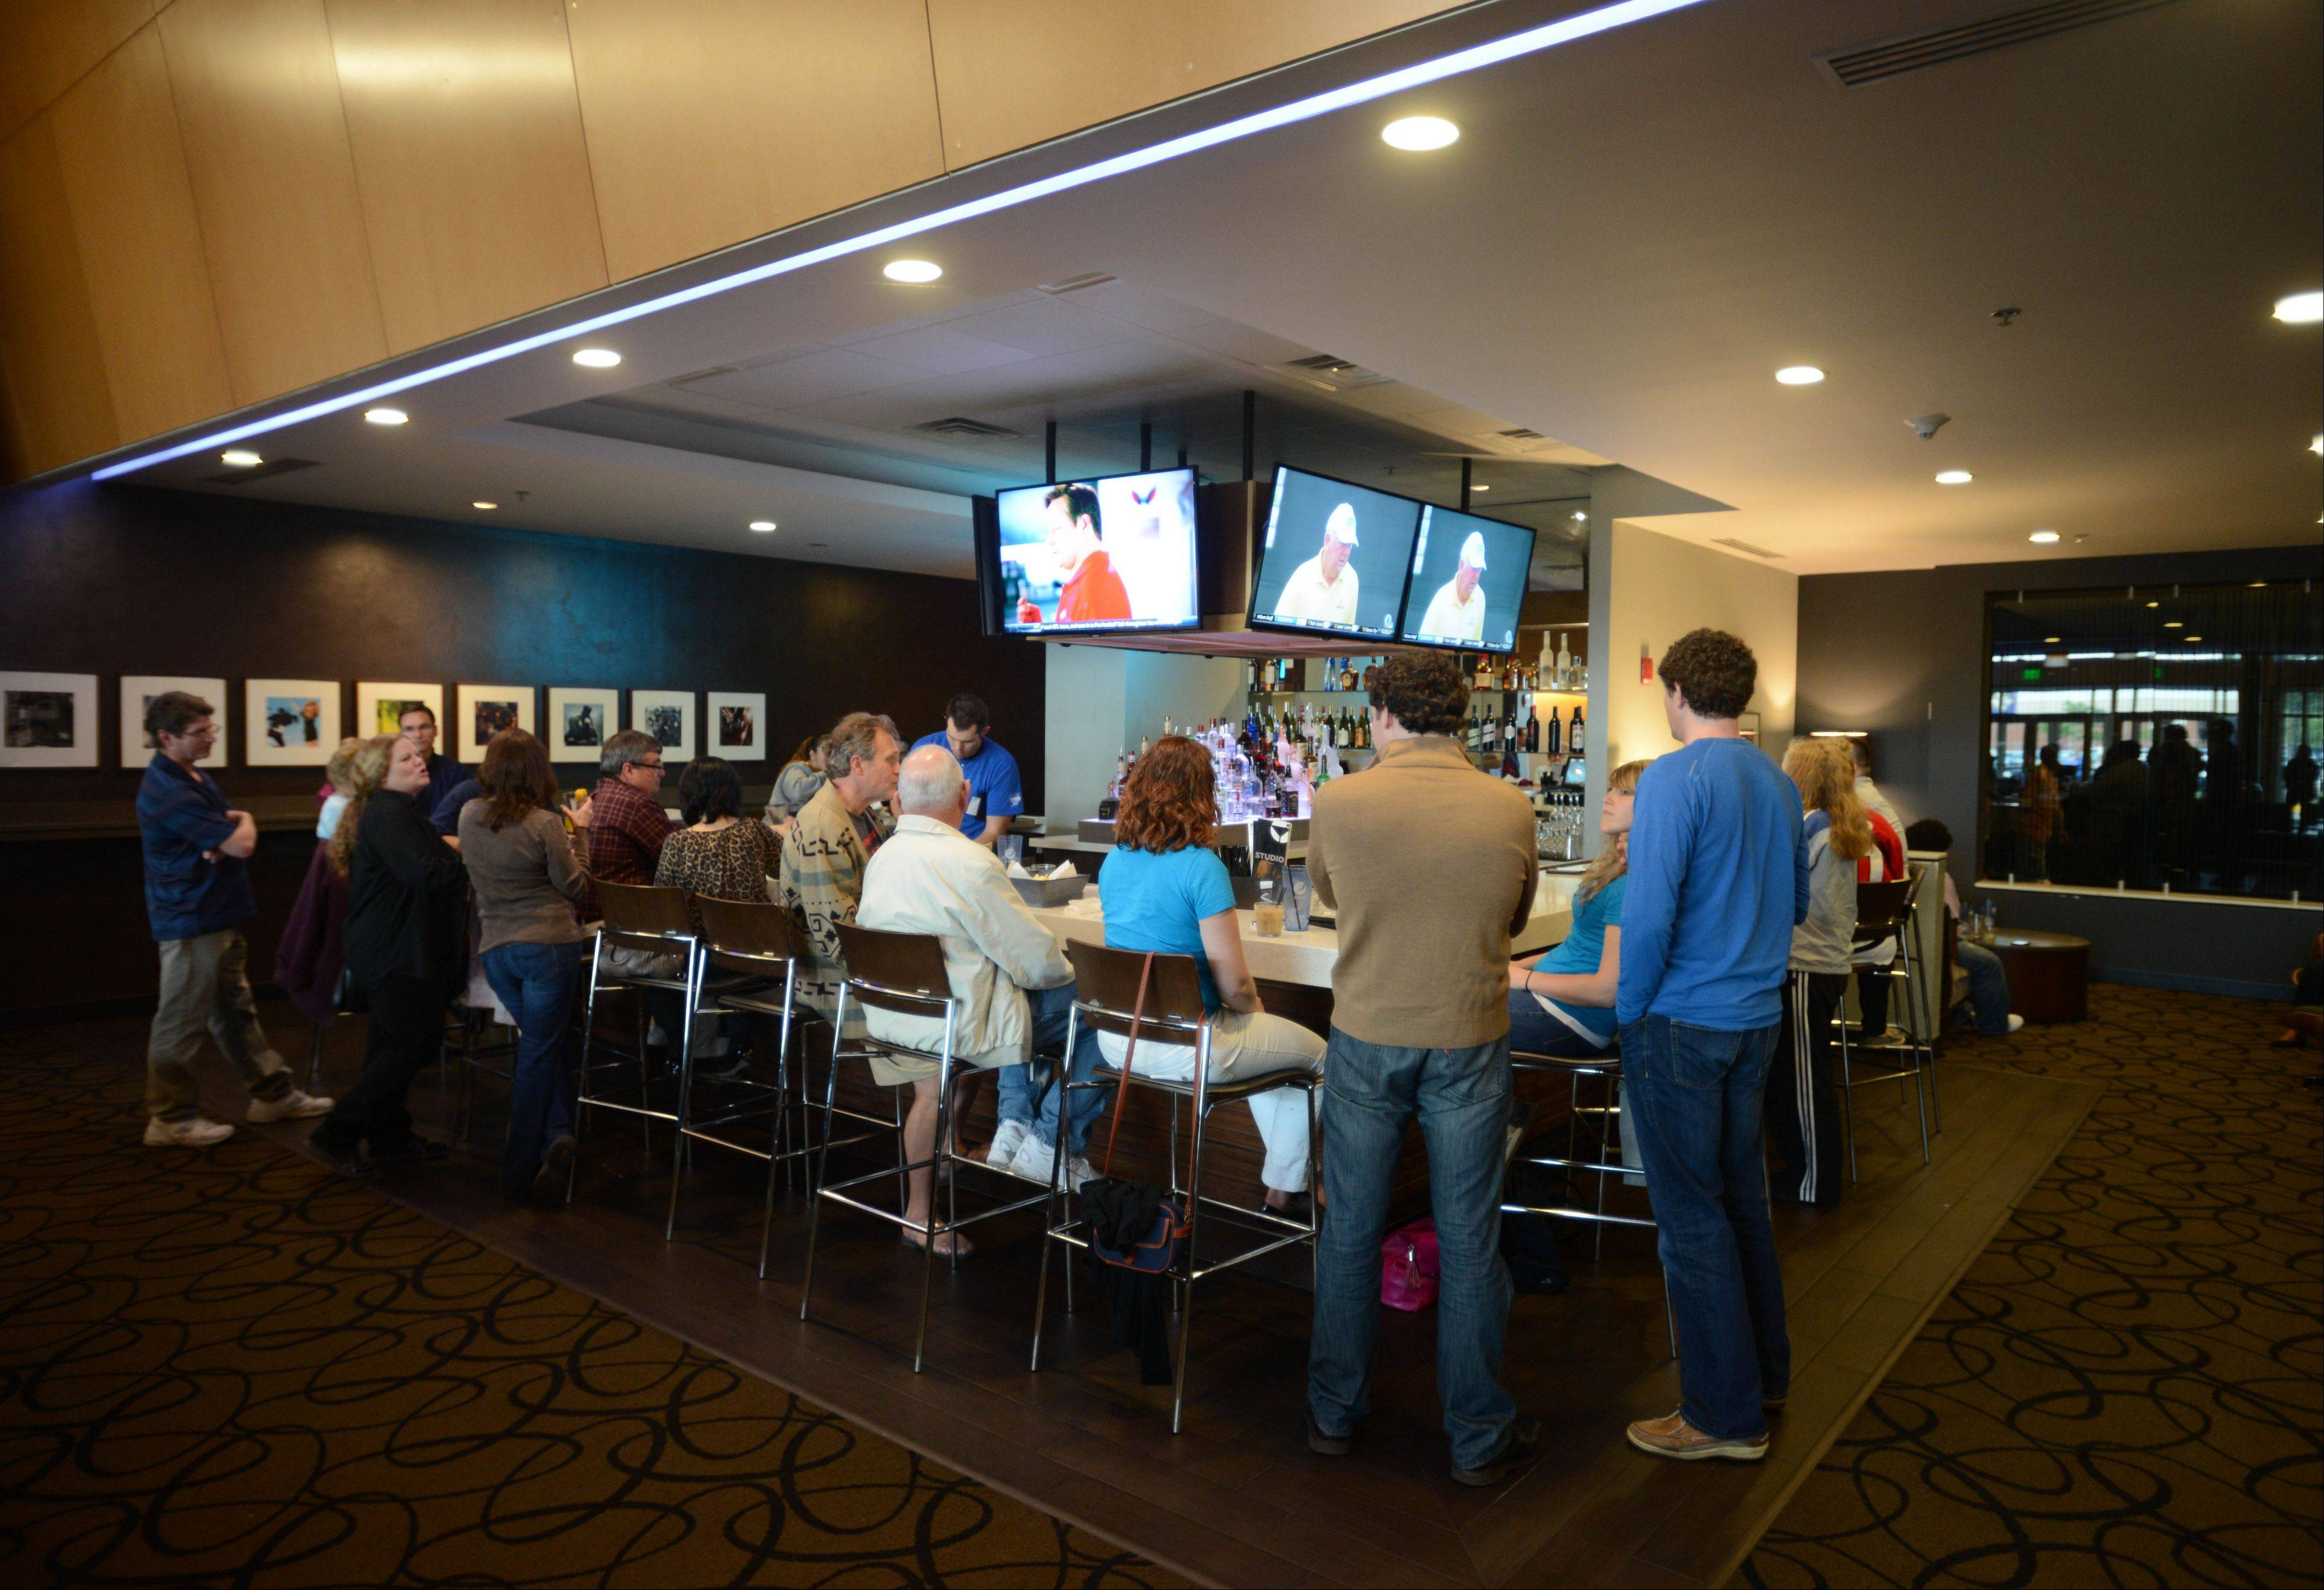 Studio Movie Grill in Wheaton has a full bar.